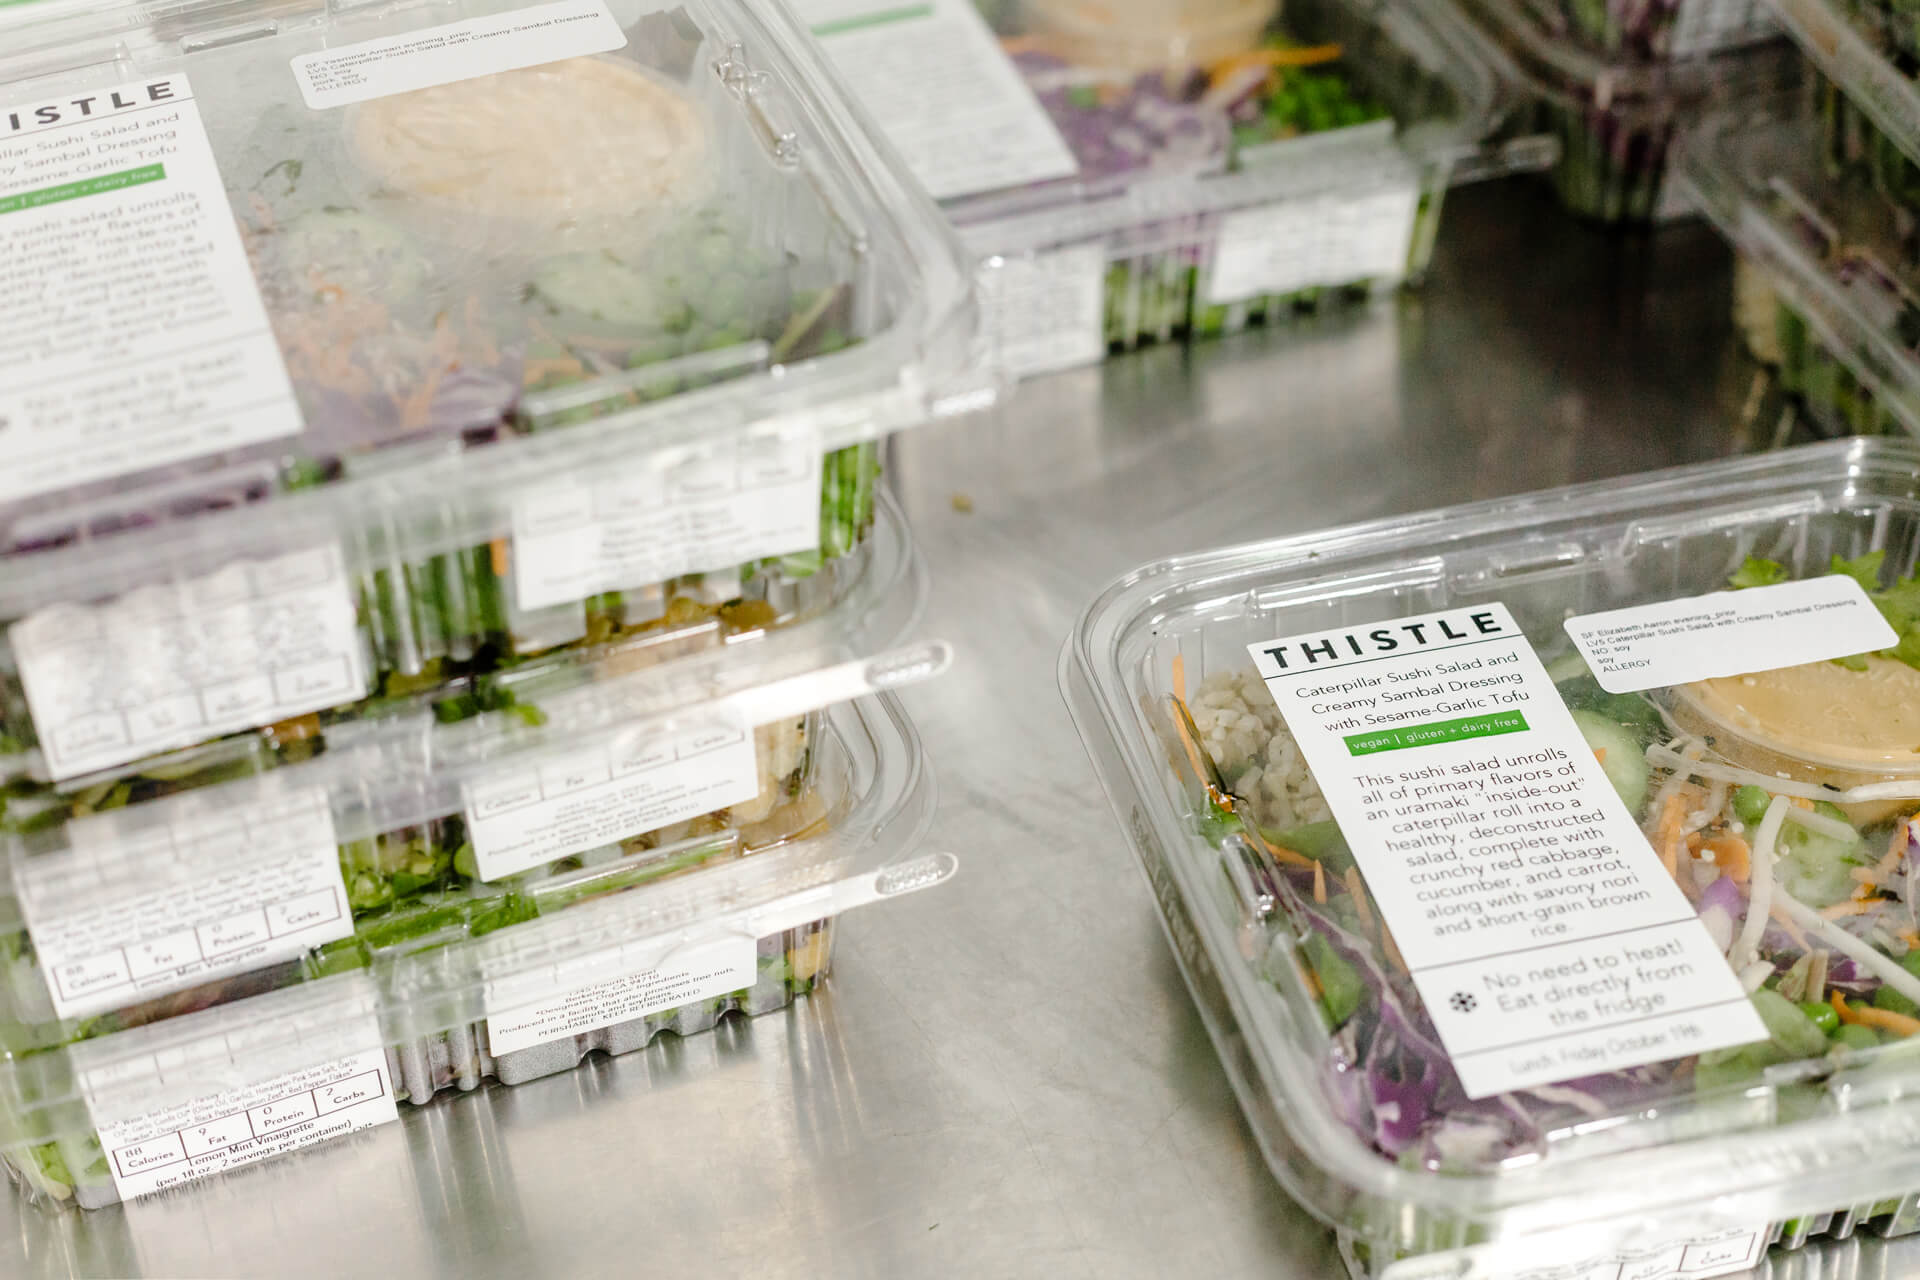 Thistle health, Healthy, Meals